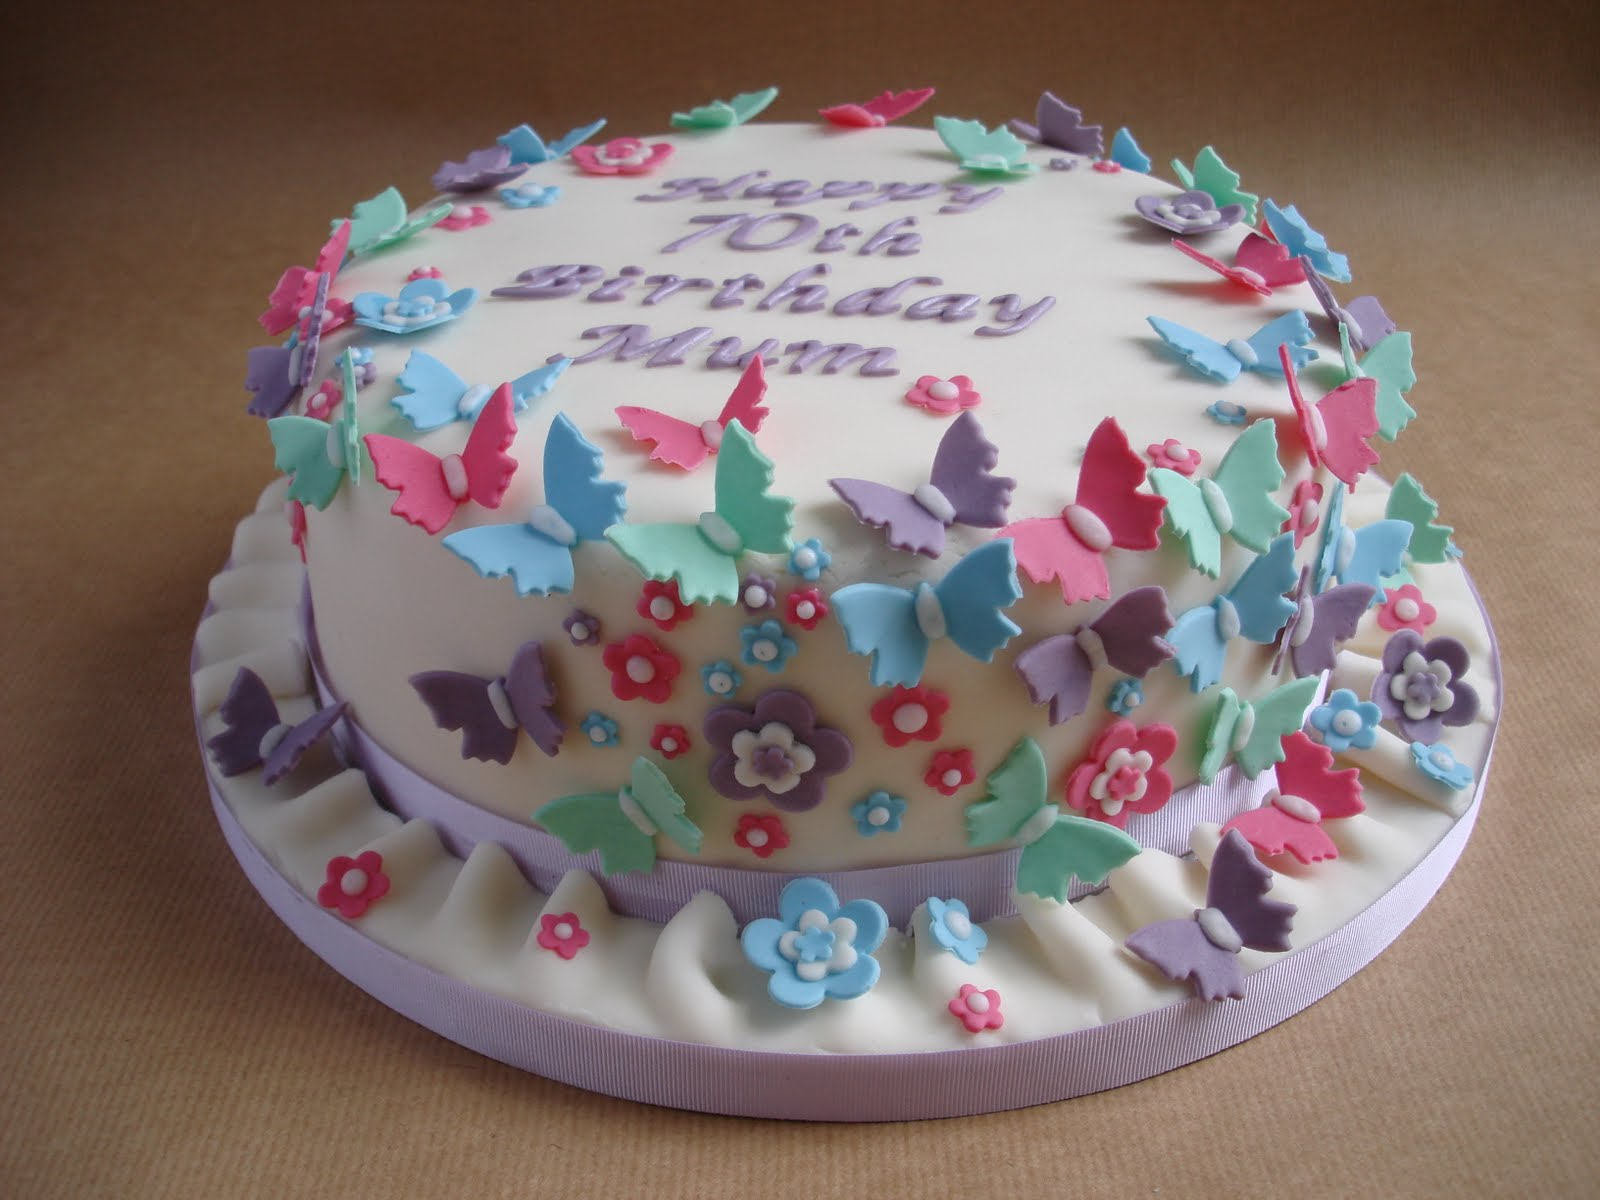 Cake Images Butterfly : The 3rd Butterfly Cake